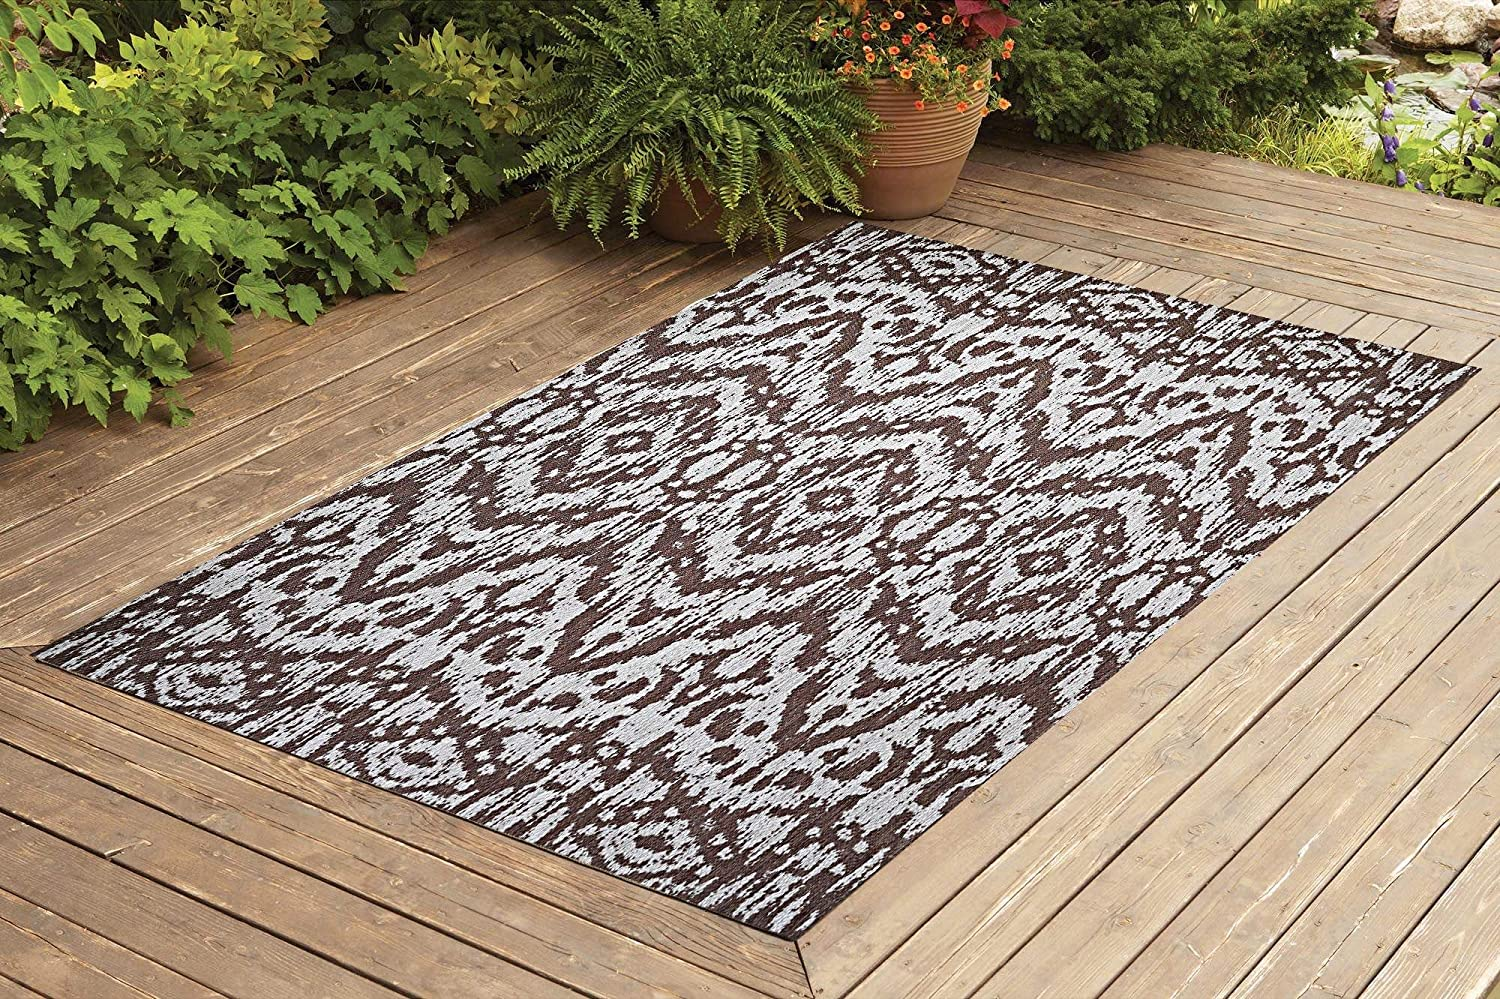 Benissimo Indoor Outdoor Rug Limited Special Price La Petite Collection Natural Branded goods Sisal